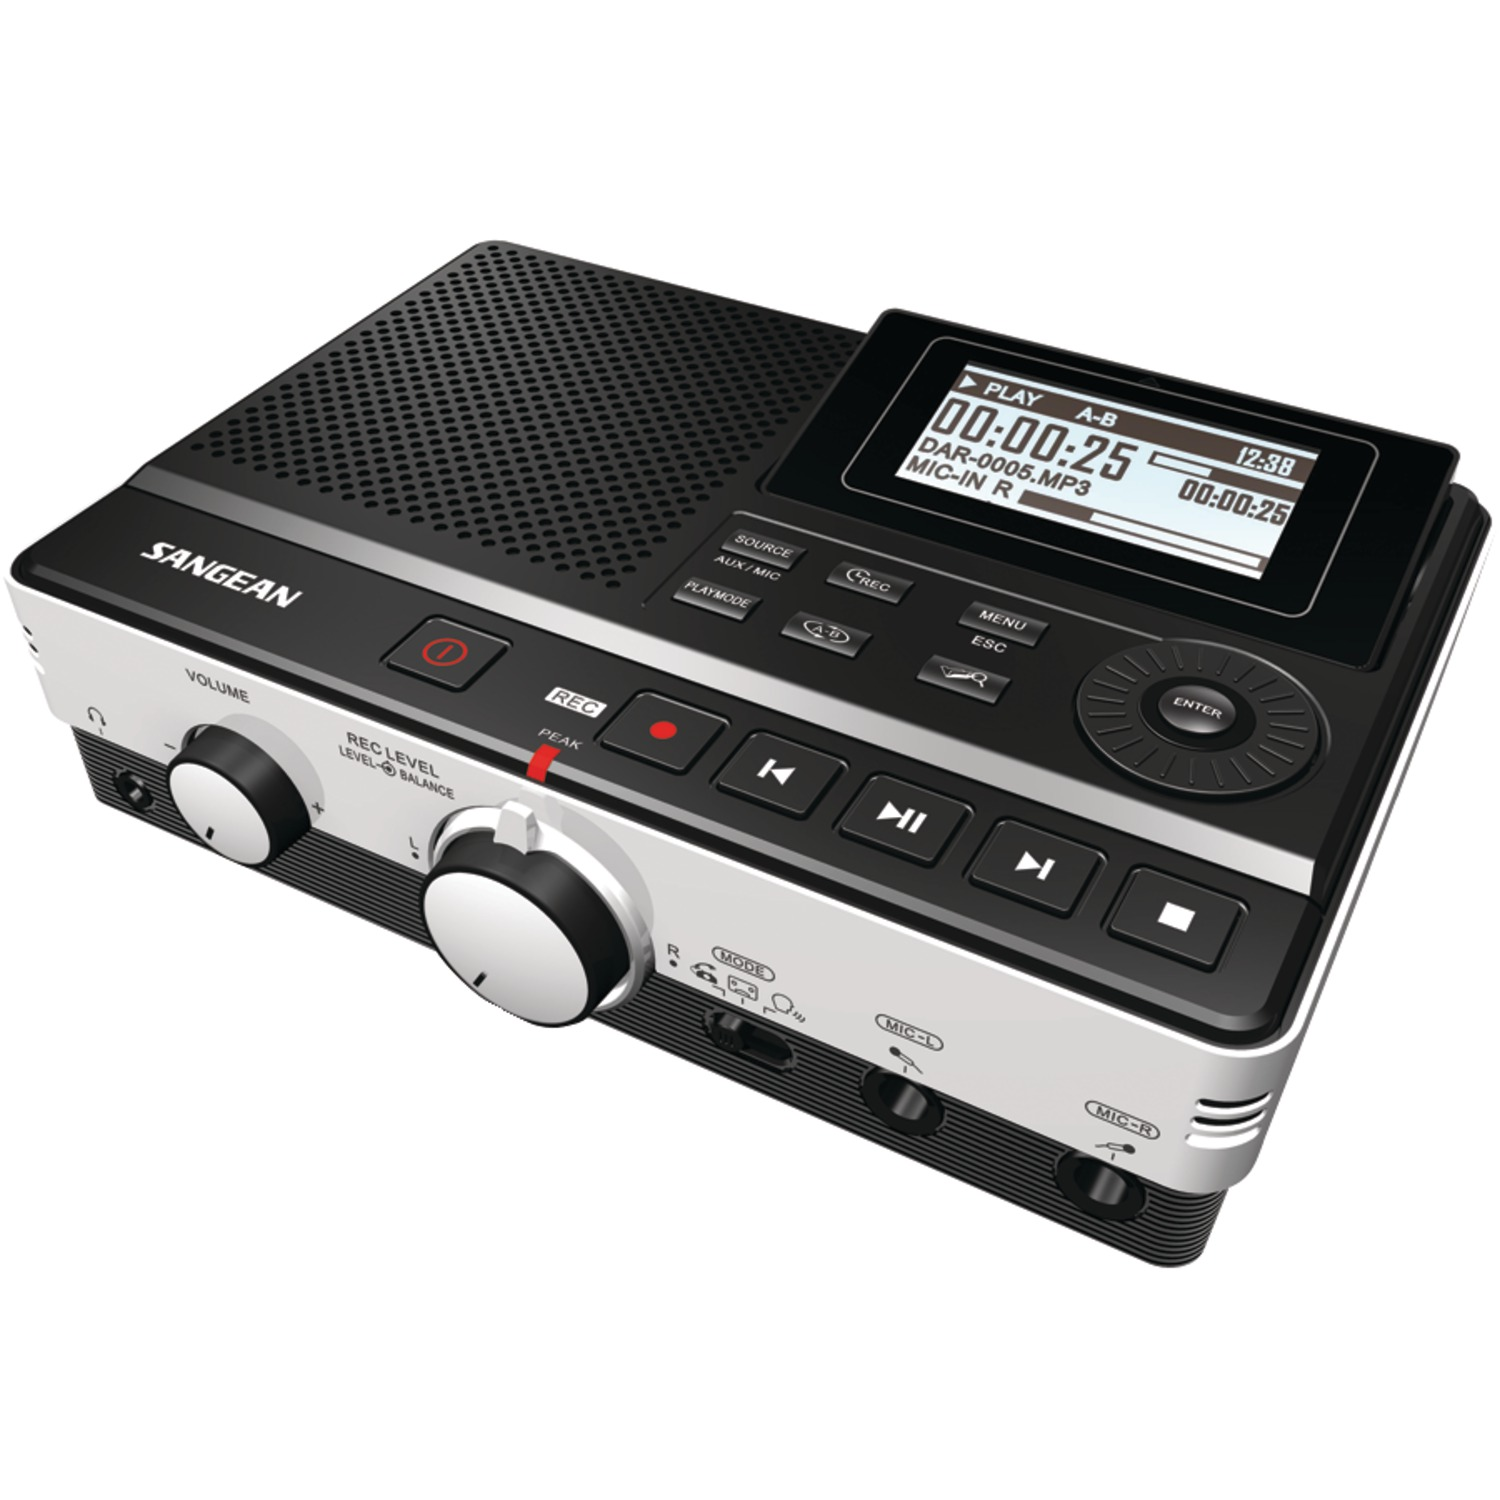 Sangean Dar-101 Digital Audio Recorder With Phone Answering Capability